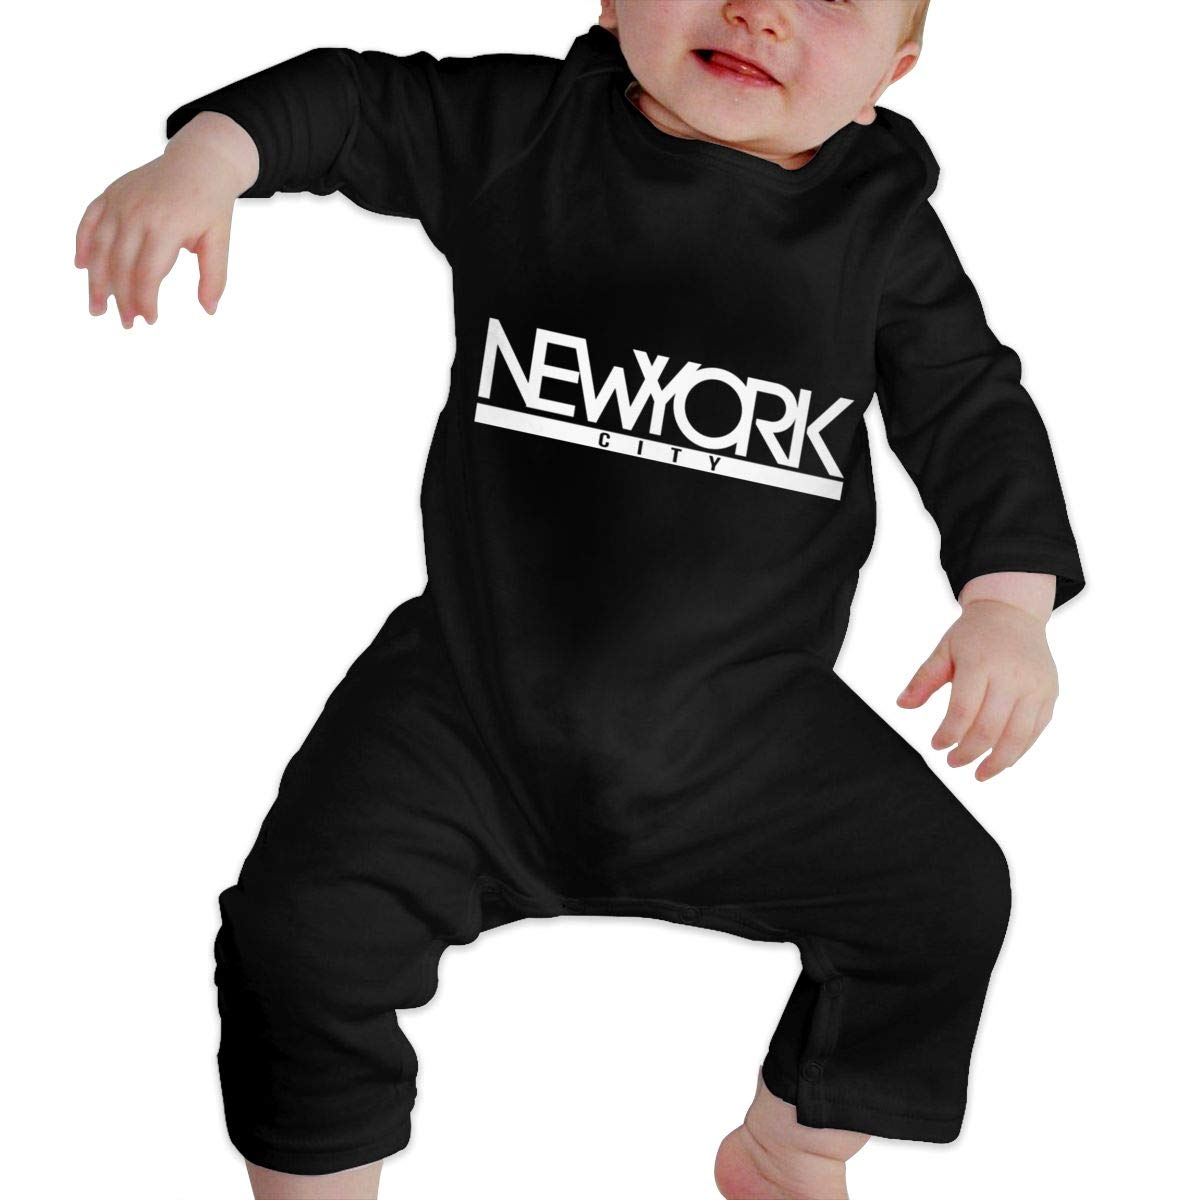 New York City Unisex Long Sleeve Baby Gown Baby Bodysuit Unionsuit Footed Pajamas Romper Jumpsuit